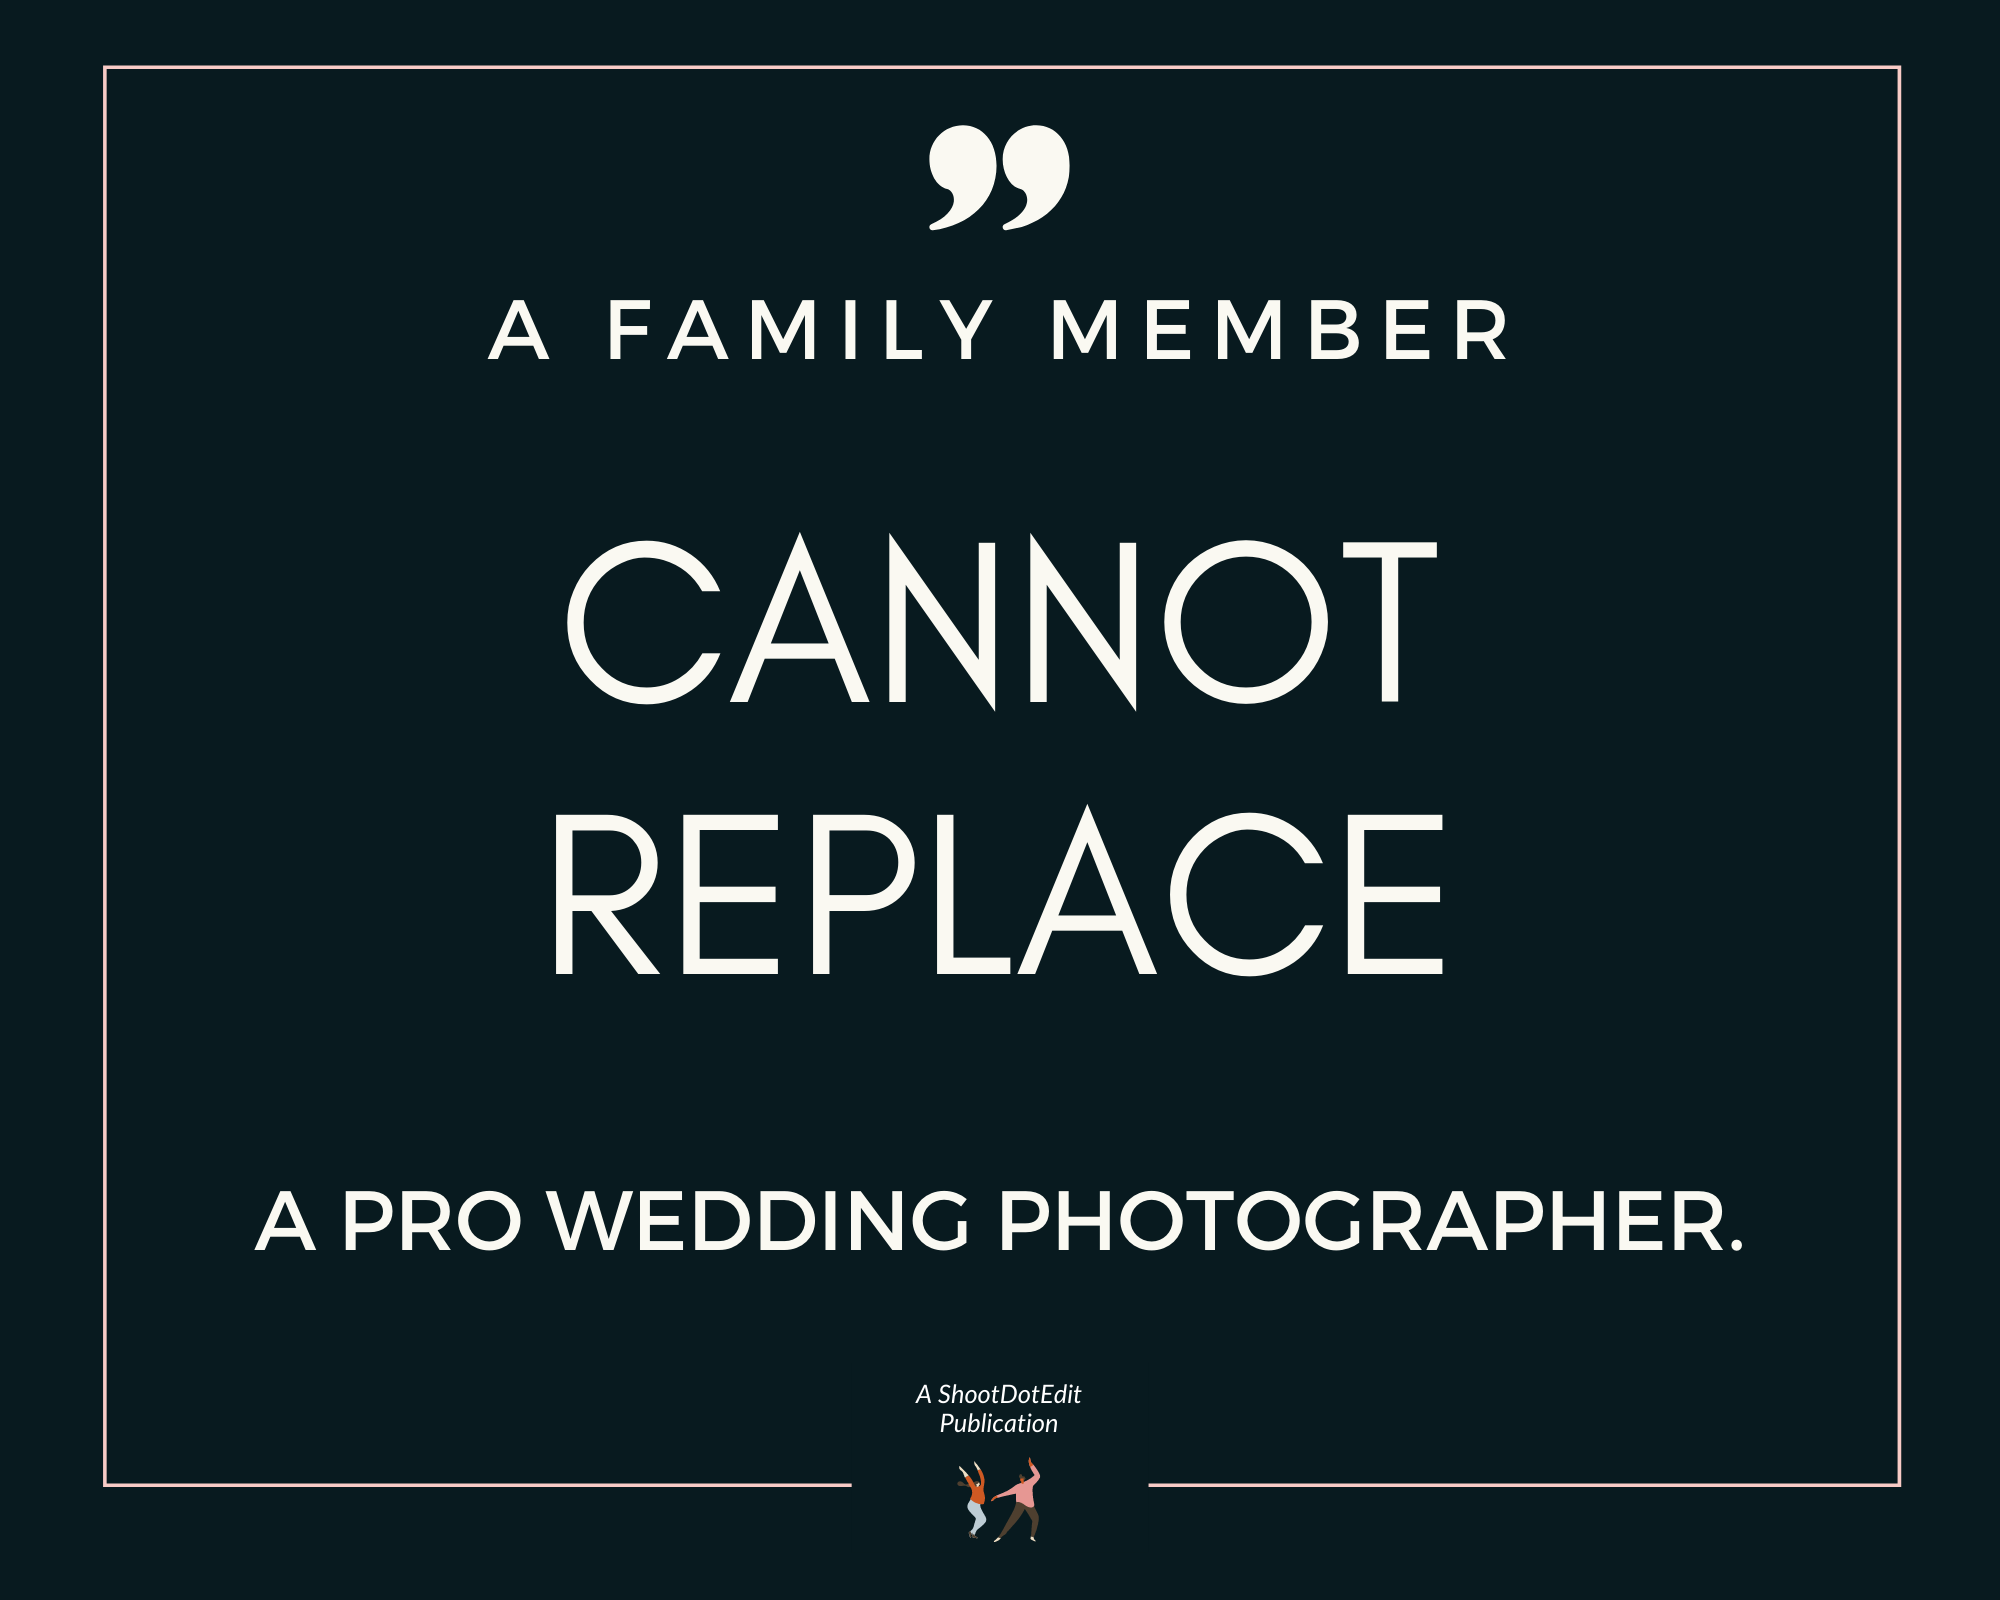 Graphic displaying - A family member cannot replace a pro wedding photographer